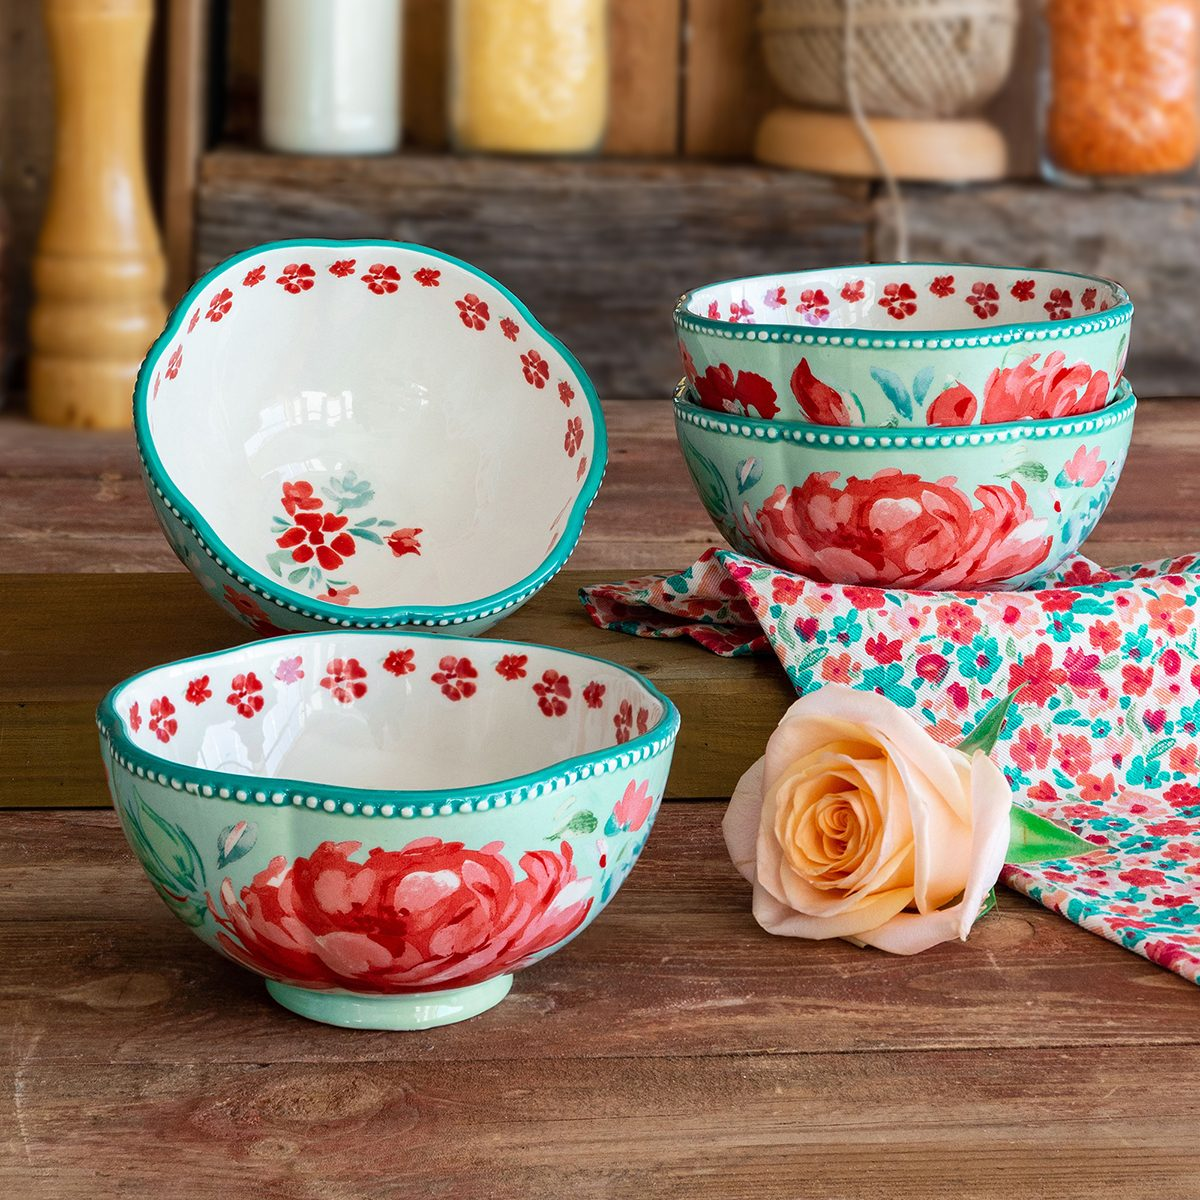 The Pioneer Woman Gorgeous Garden Bowls